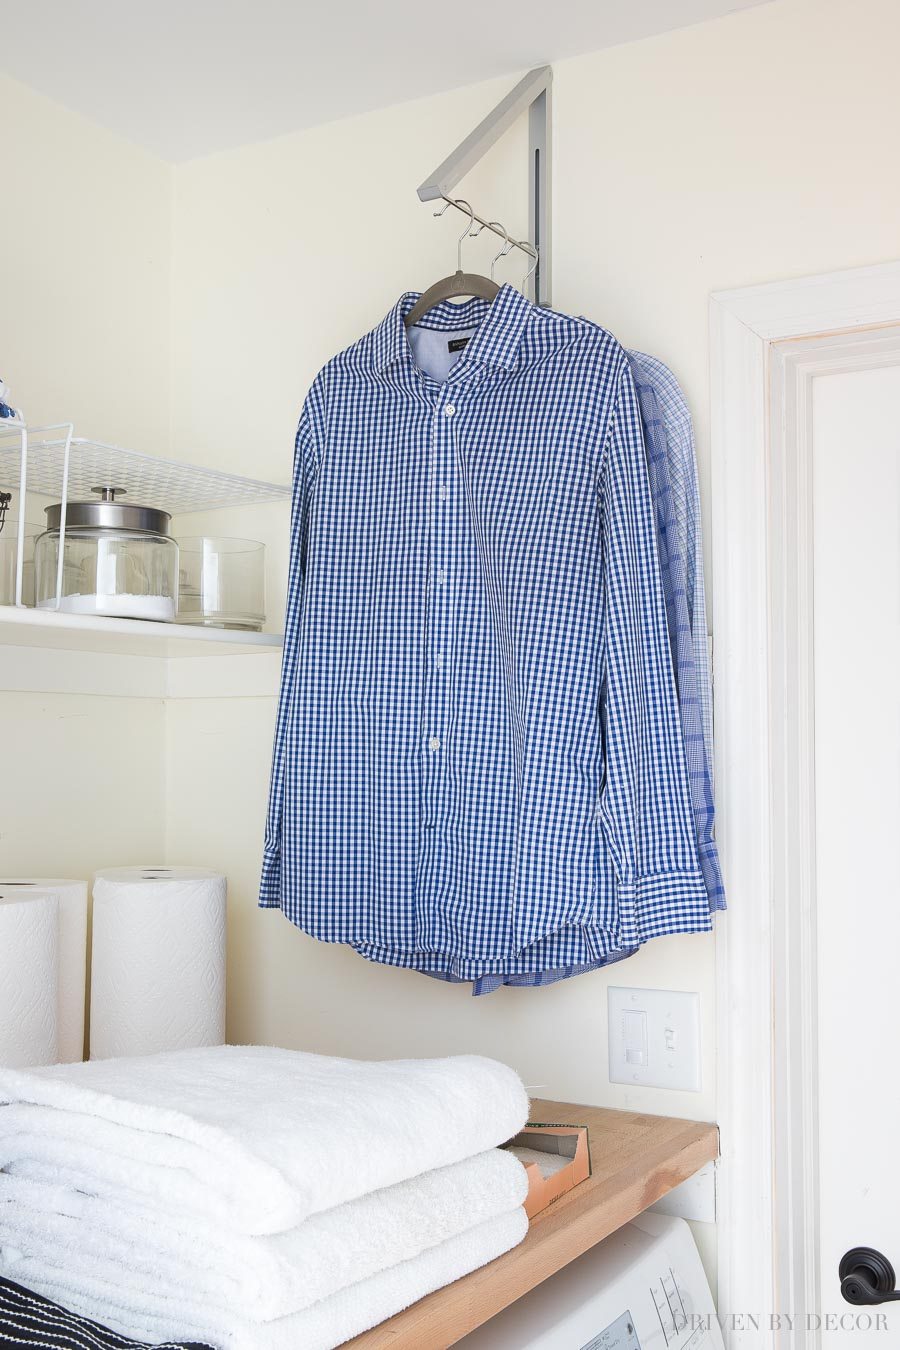 Such a lifesaver! Love this wall mounted folding clothes rack - perfect for air drying clothes or for hanging them immediately from the dryer to prevent wrinkles!